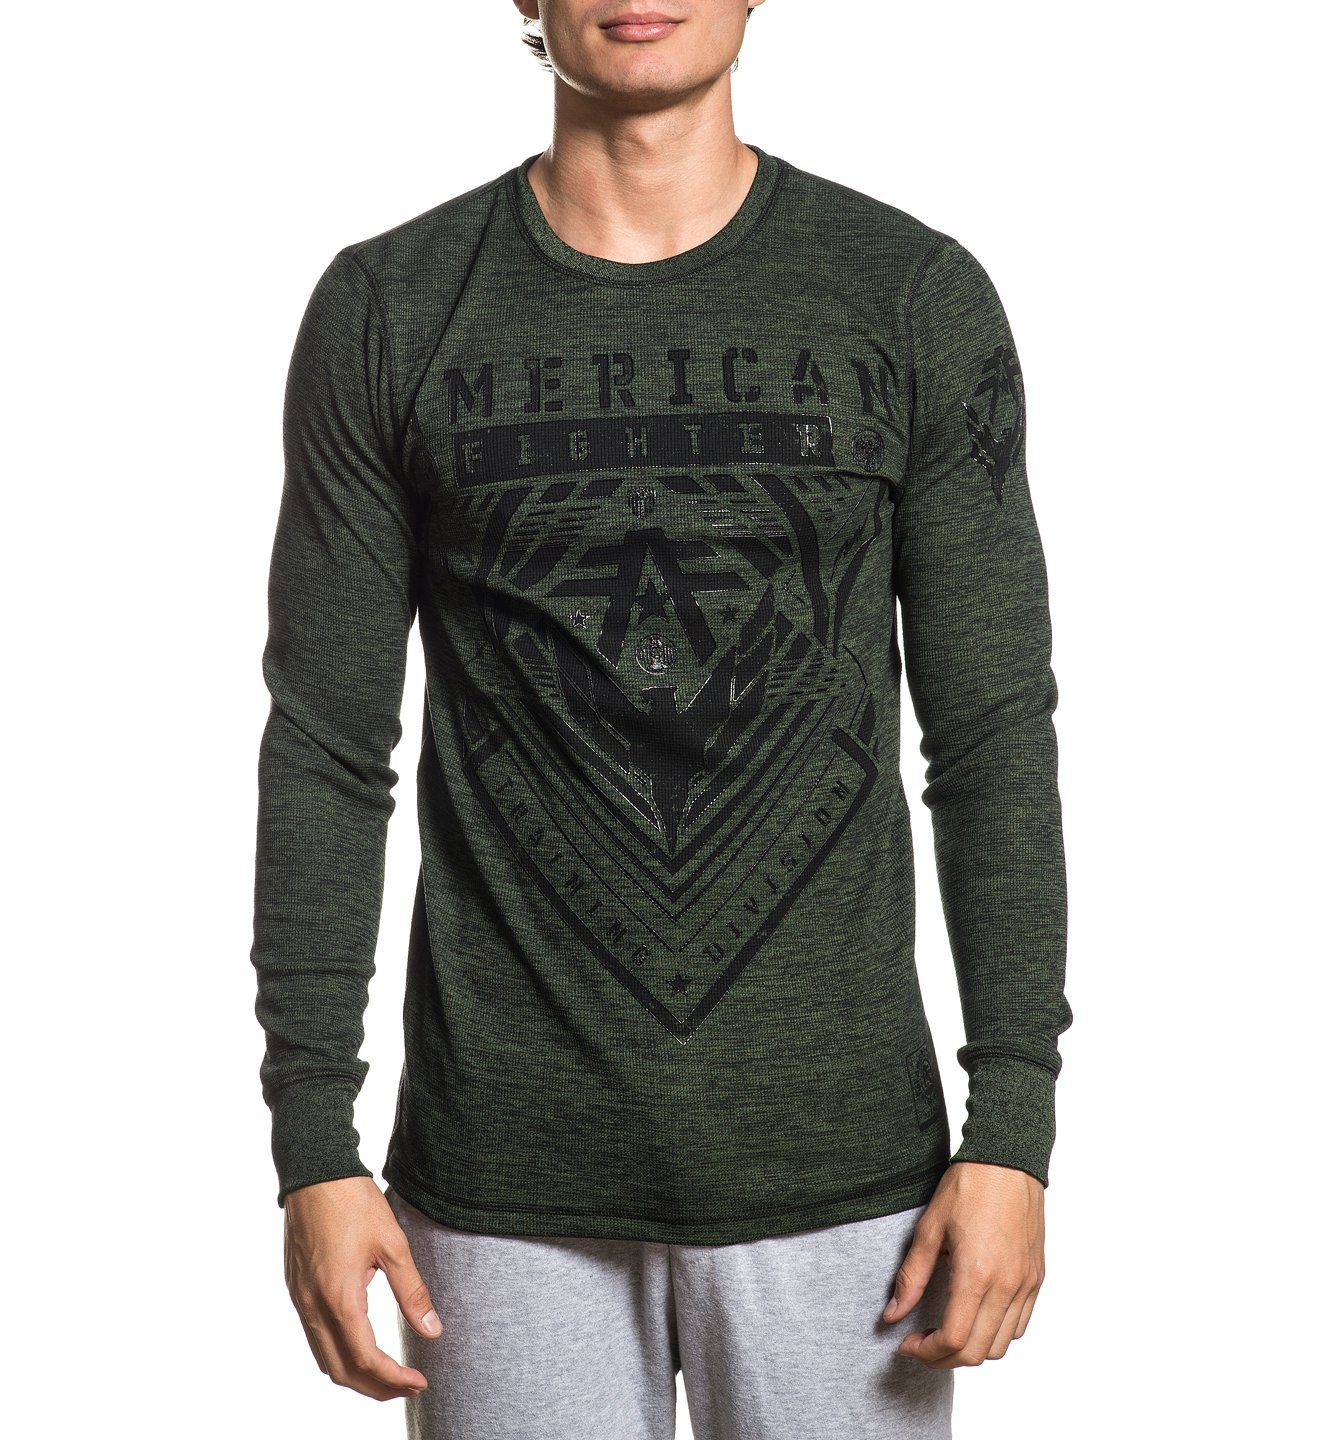 Wardell - Mens Long Sleeve Tees - American Fighter